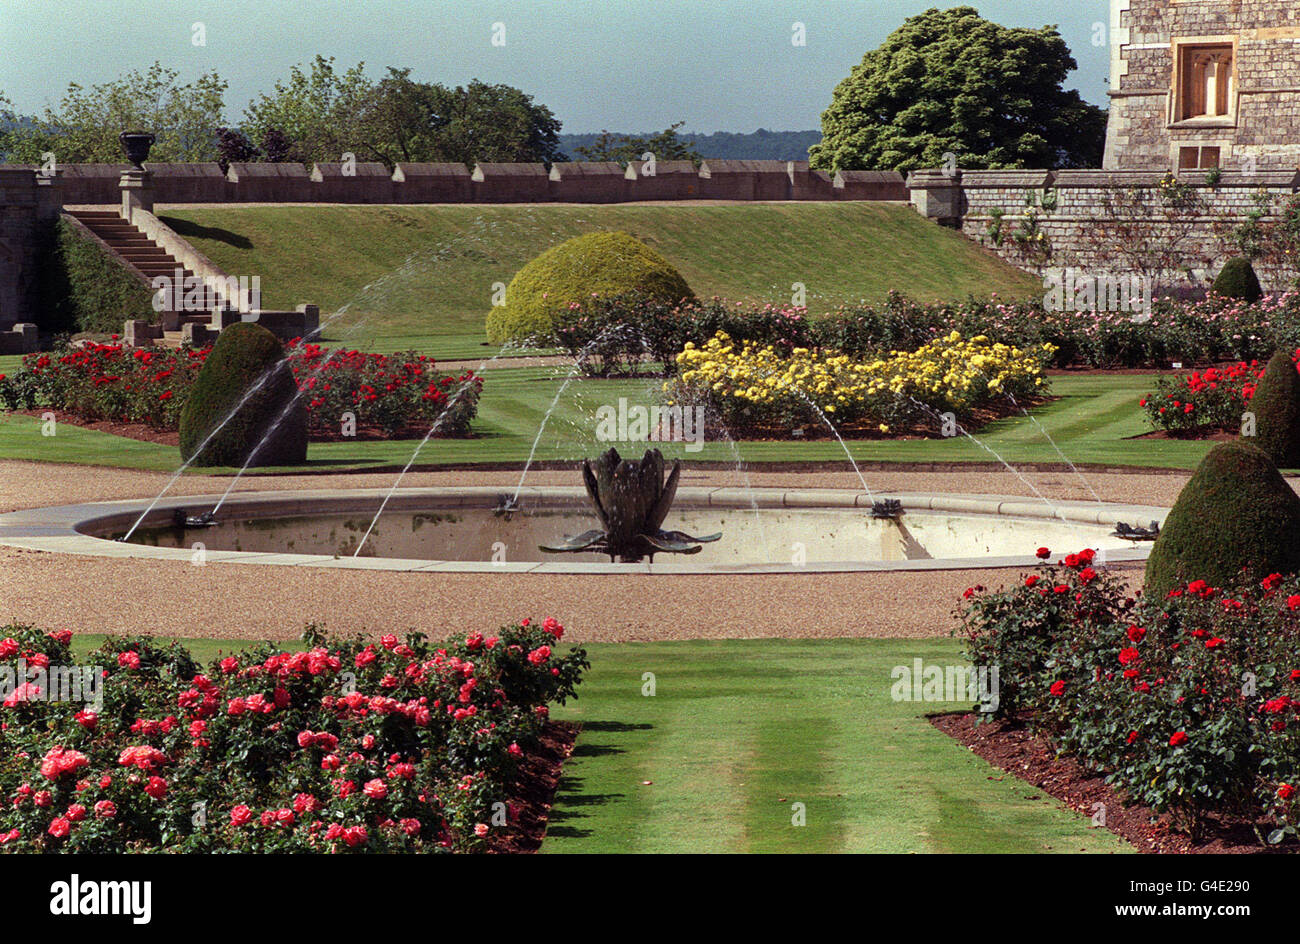 Castle Garden New York Stock Photos & Castle Garden New York Stock ...